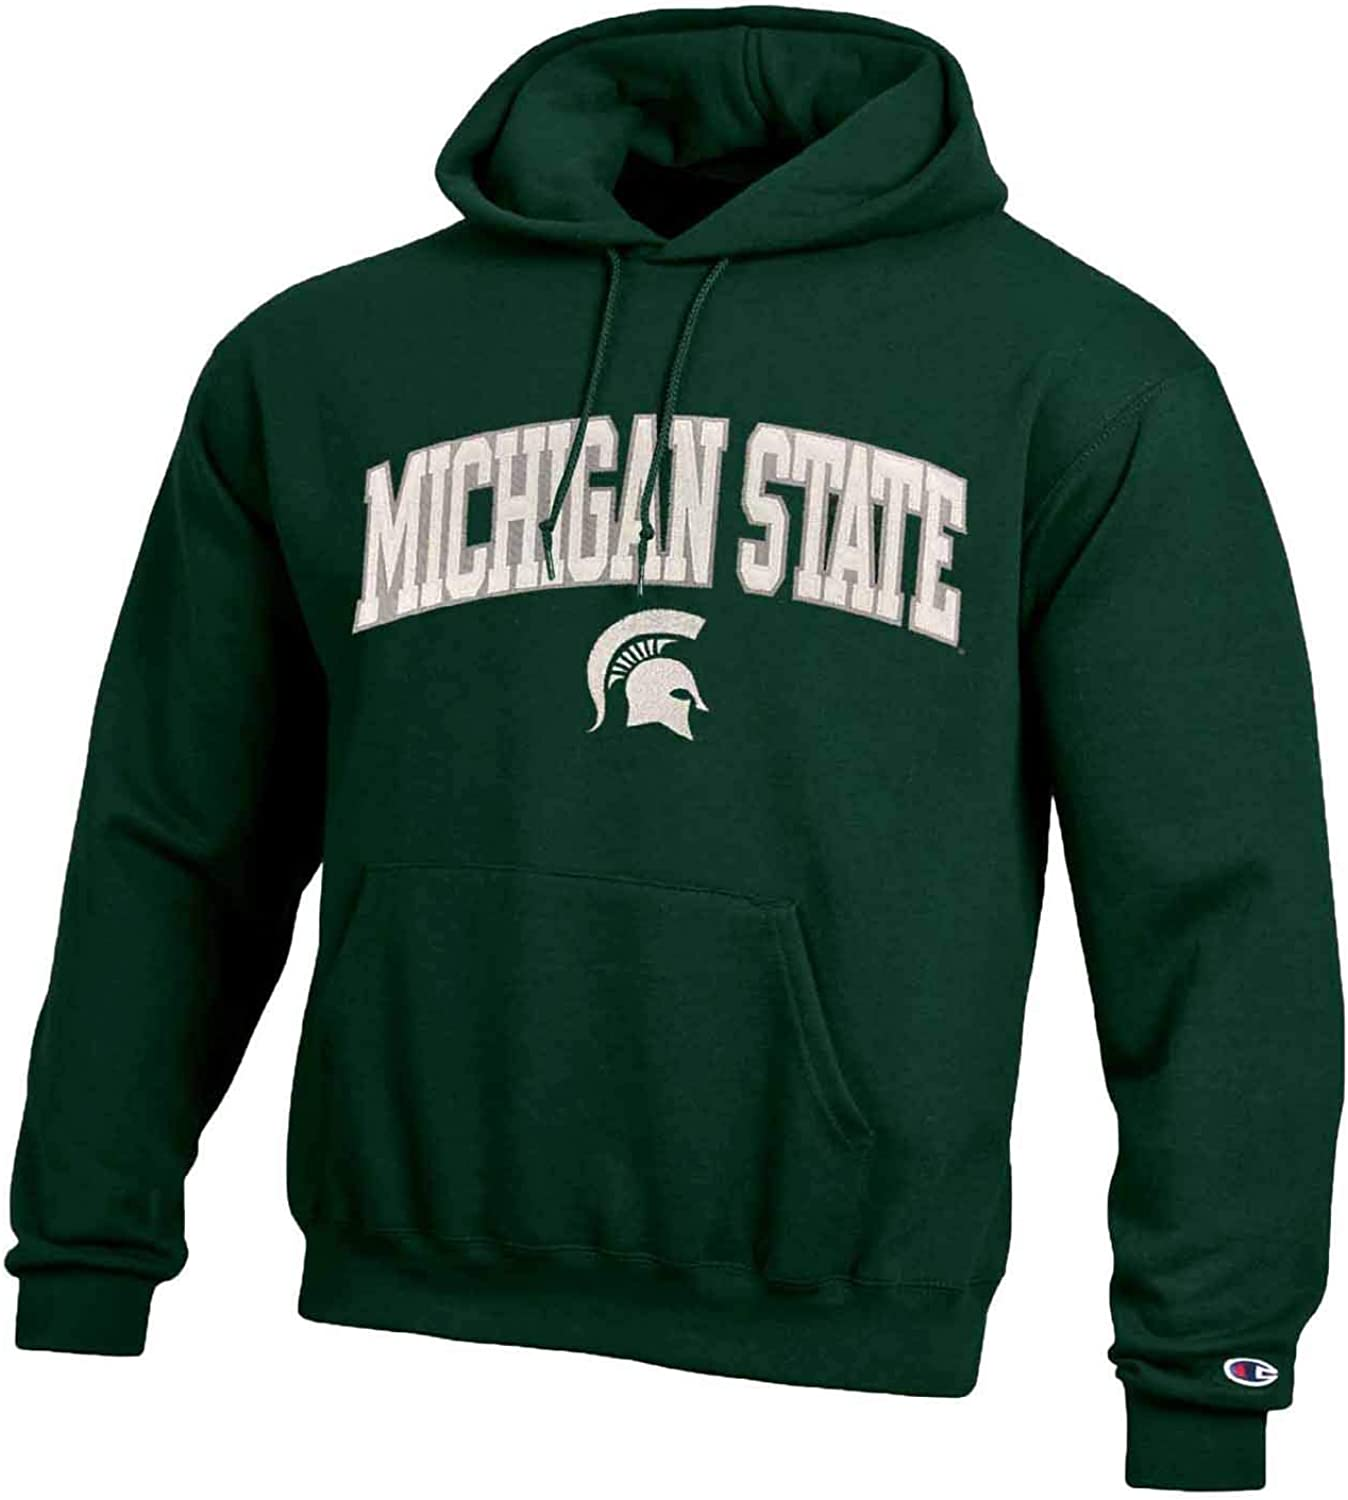 Champion Adult Tackle Twill Hooded Sweatshirt Officially Licensed Unisex NCAA Team Apparel